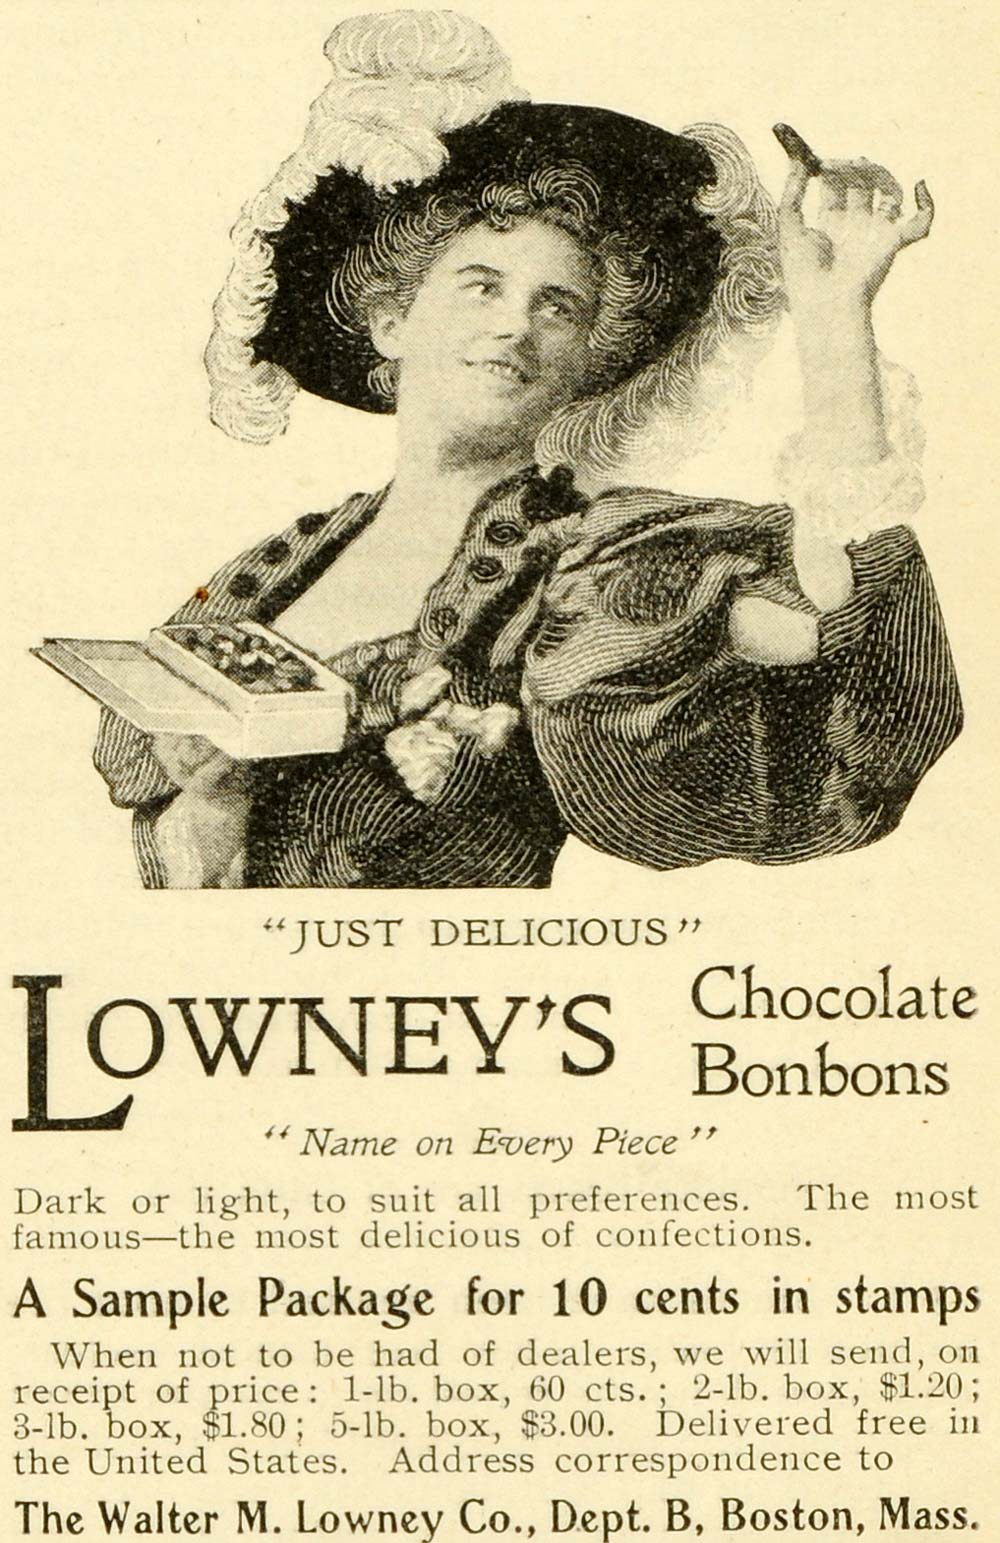 1899 Ad Walter M. Lowney Chocolate Bonbons Candy Feather Hat Poofy Sleeve LHJ6